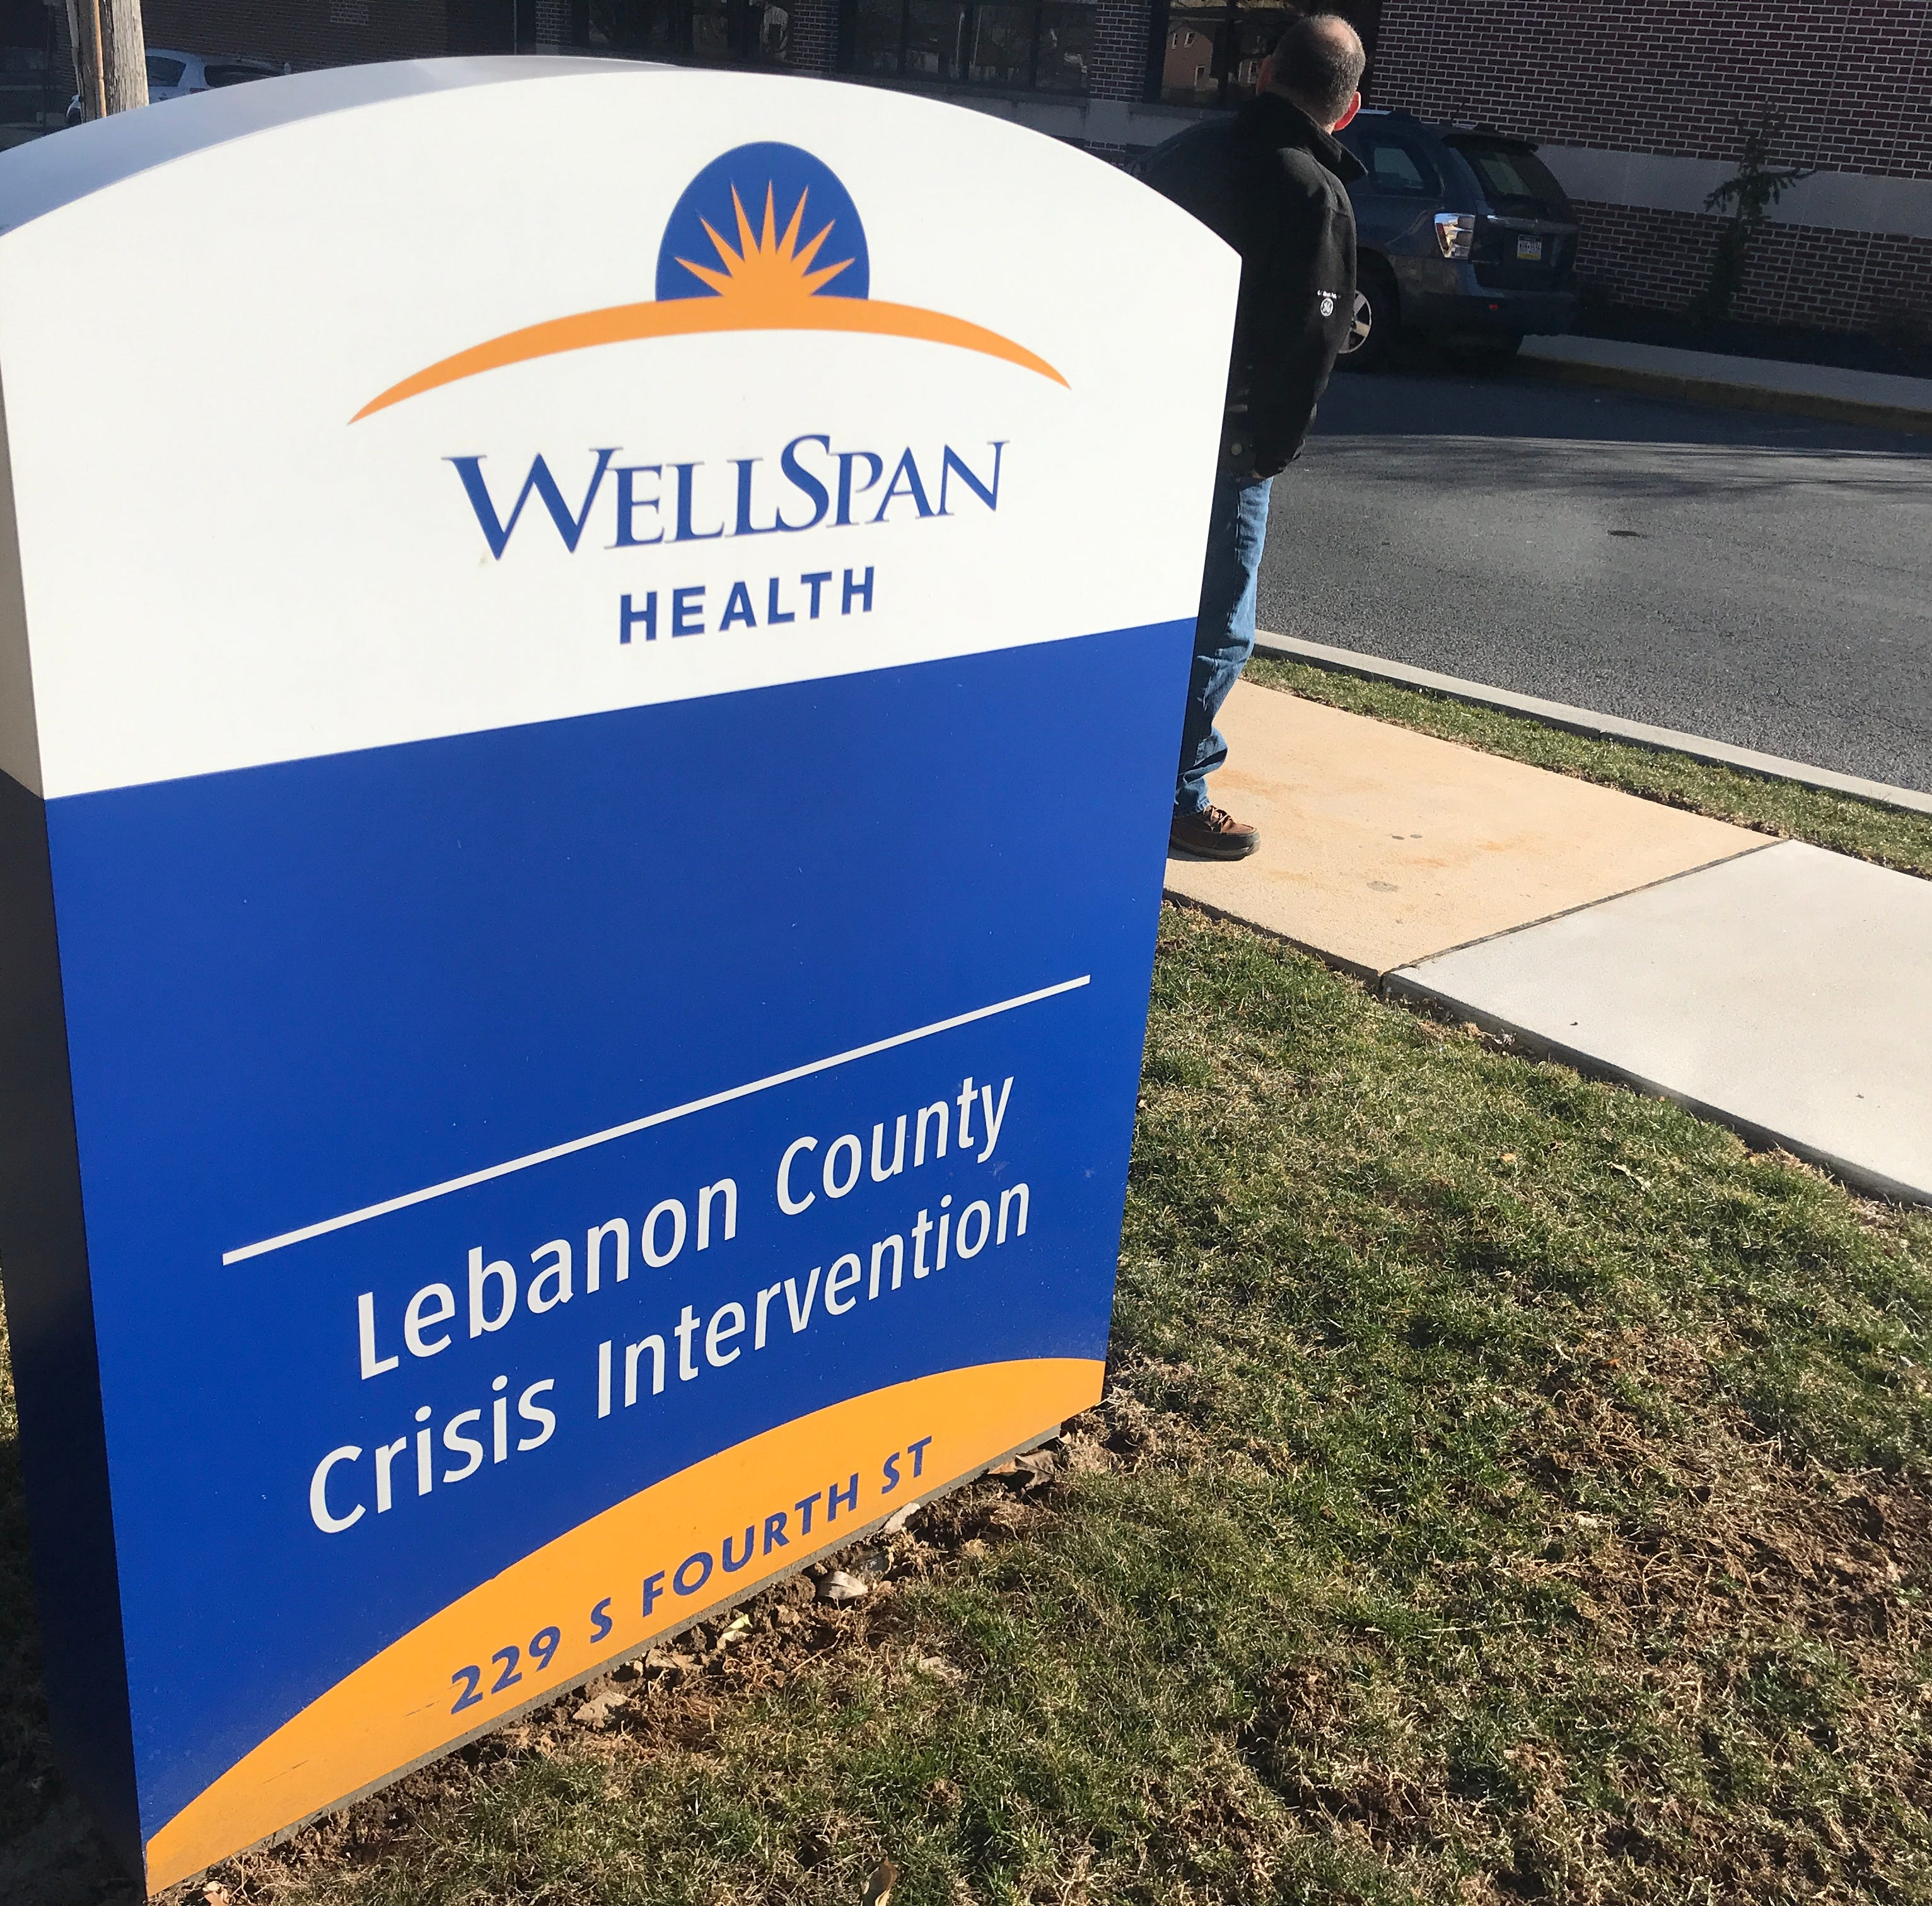 What happens when you call the Lebanon County Crisis Intervention helpline about suicide?